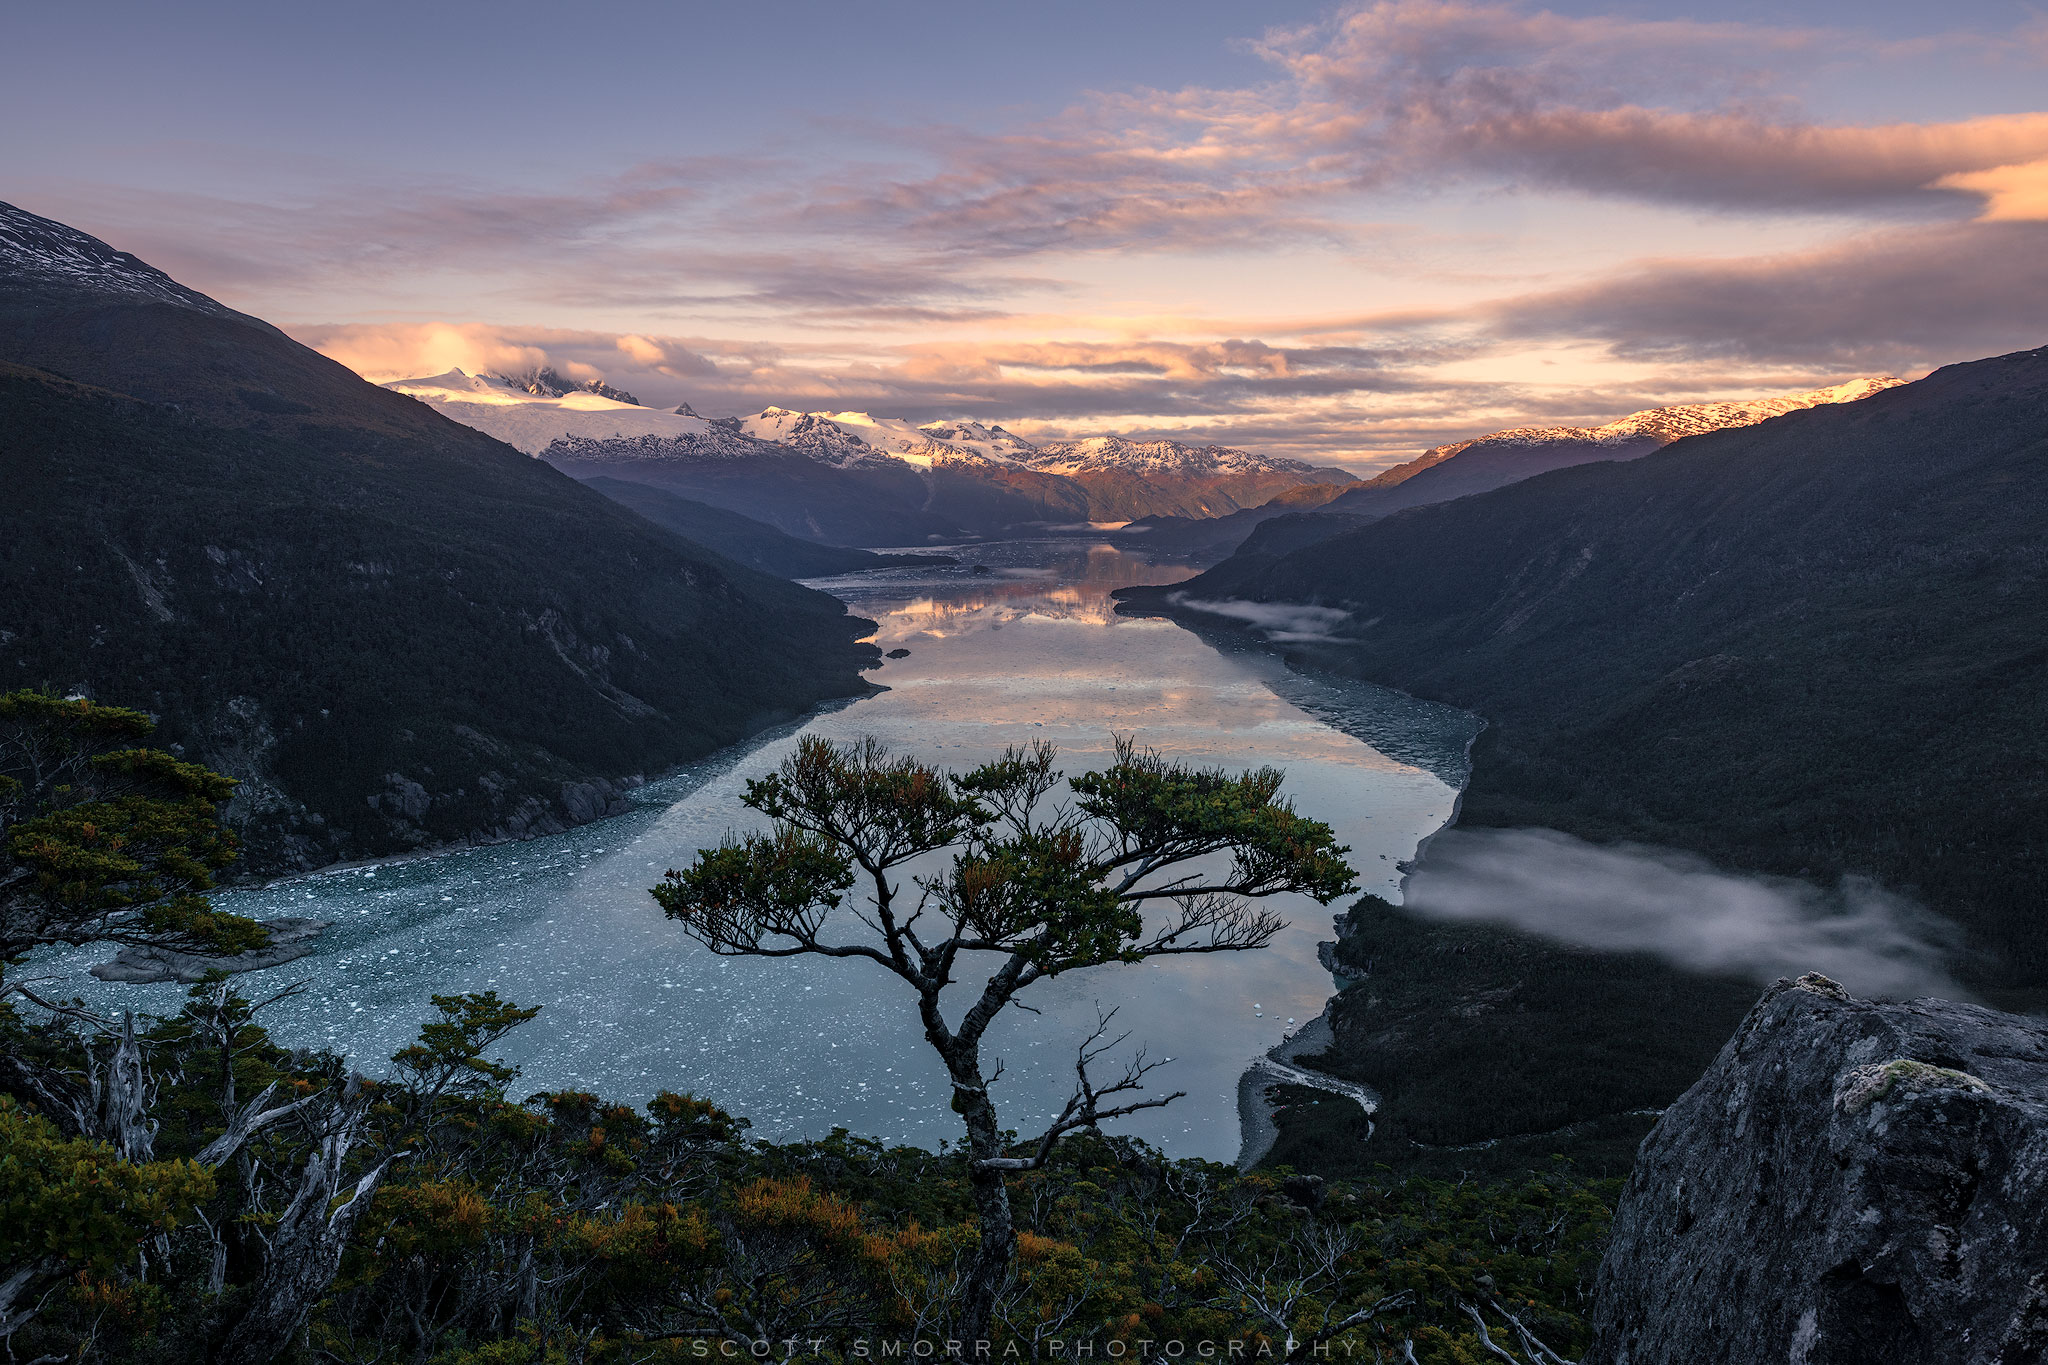 Patagonia, Chile, Fjords, lenga, tree, solitary, view, photo